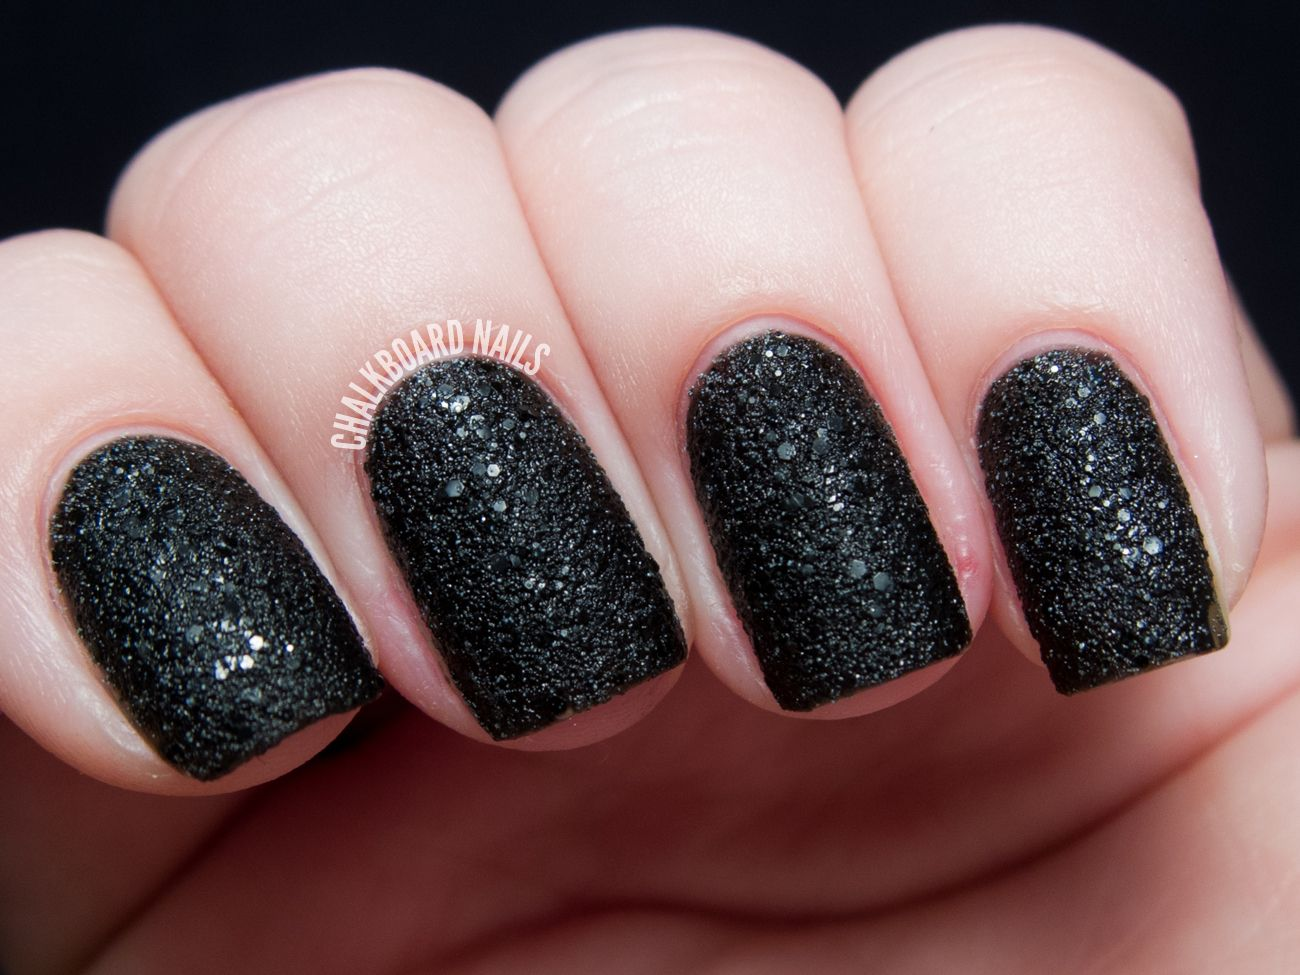 OPI Mariah Carey Holiday 2013 Collection - Liquid Sands | Chalkboard ...